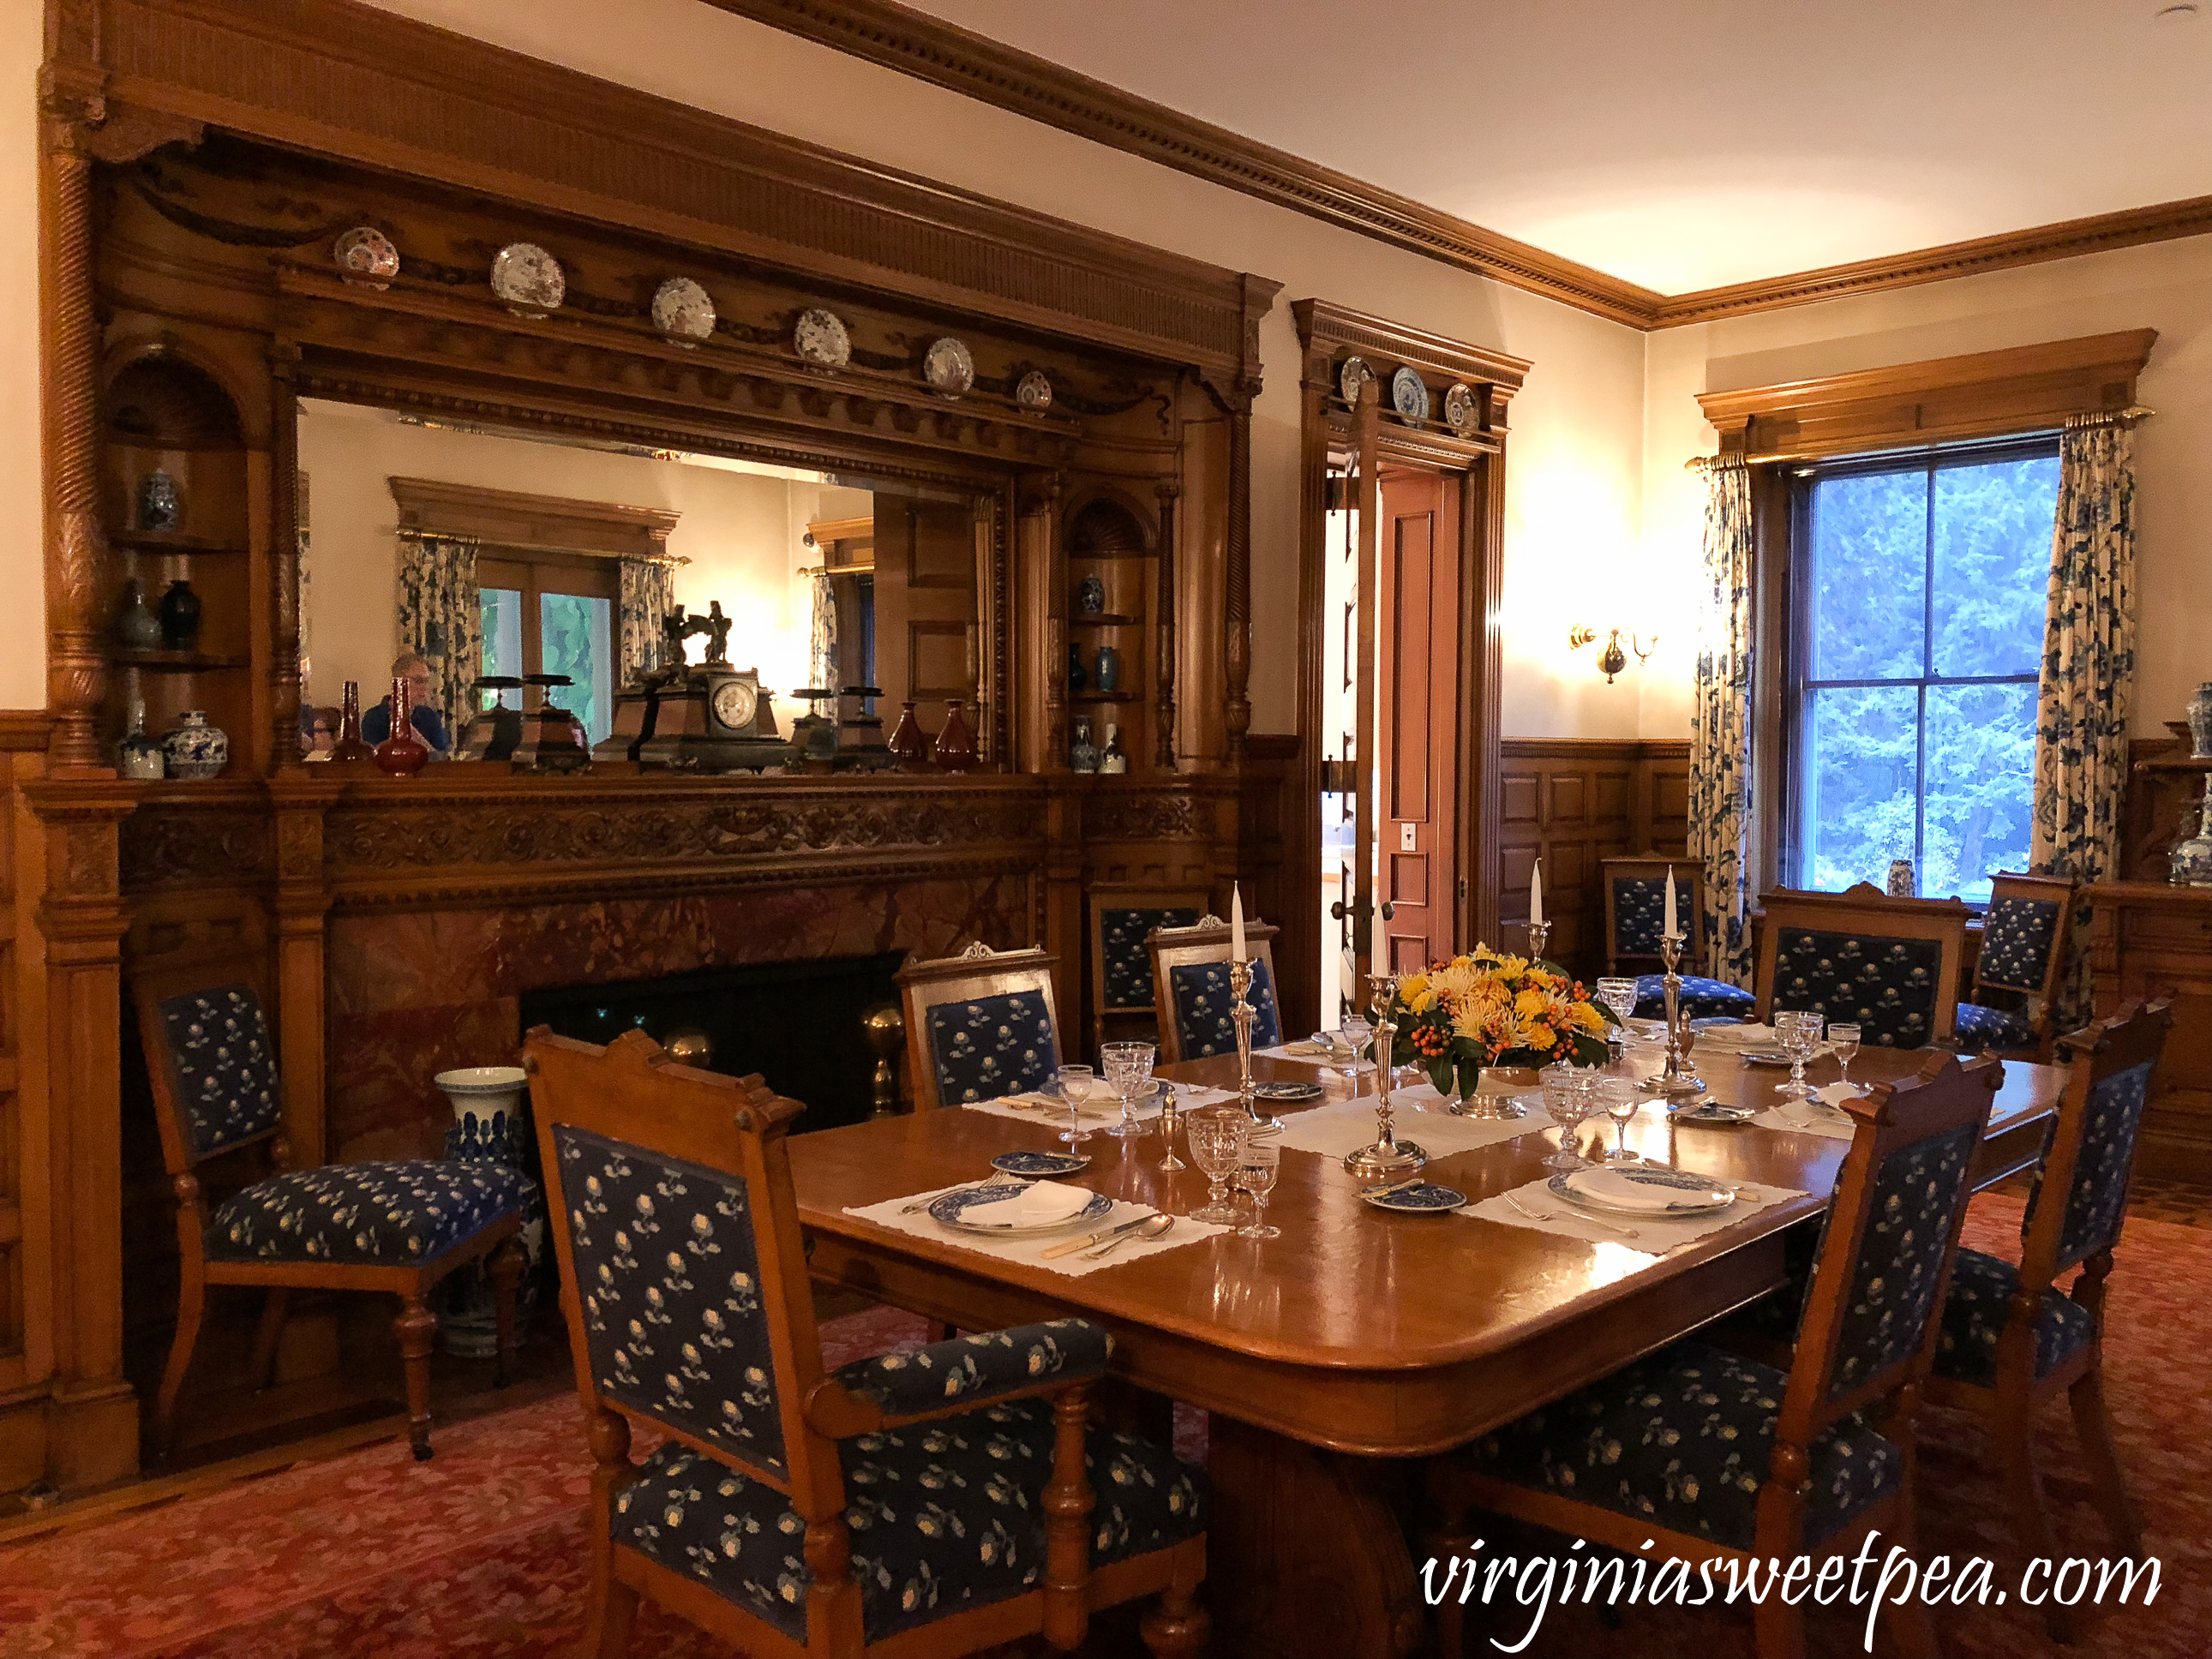 Touring the Marsh-Billings-Rockefeller Mansion in Woodstock, Vermont #vermont #travel #woodstockvermont